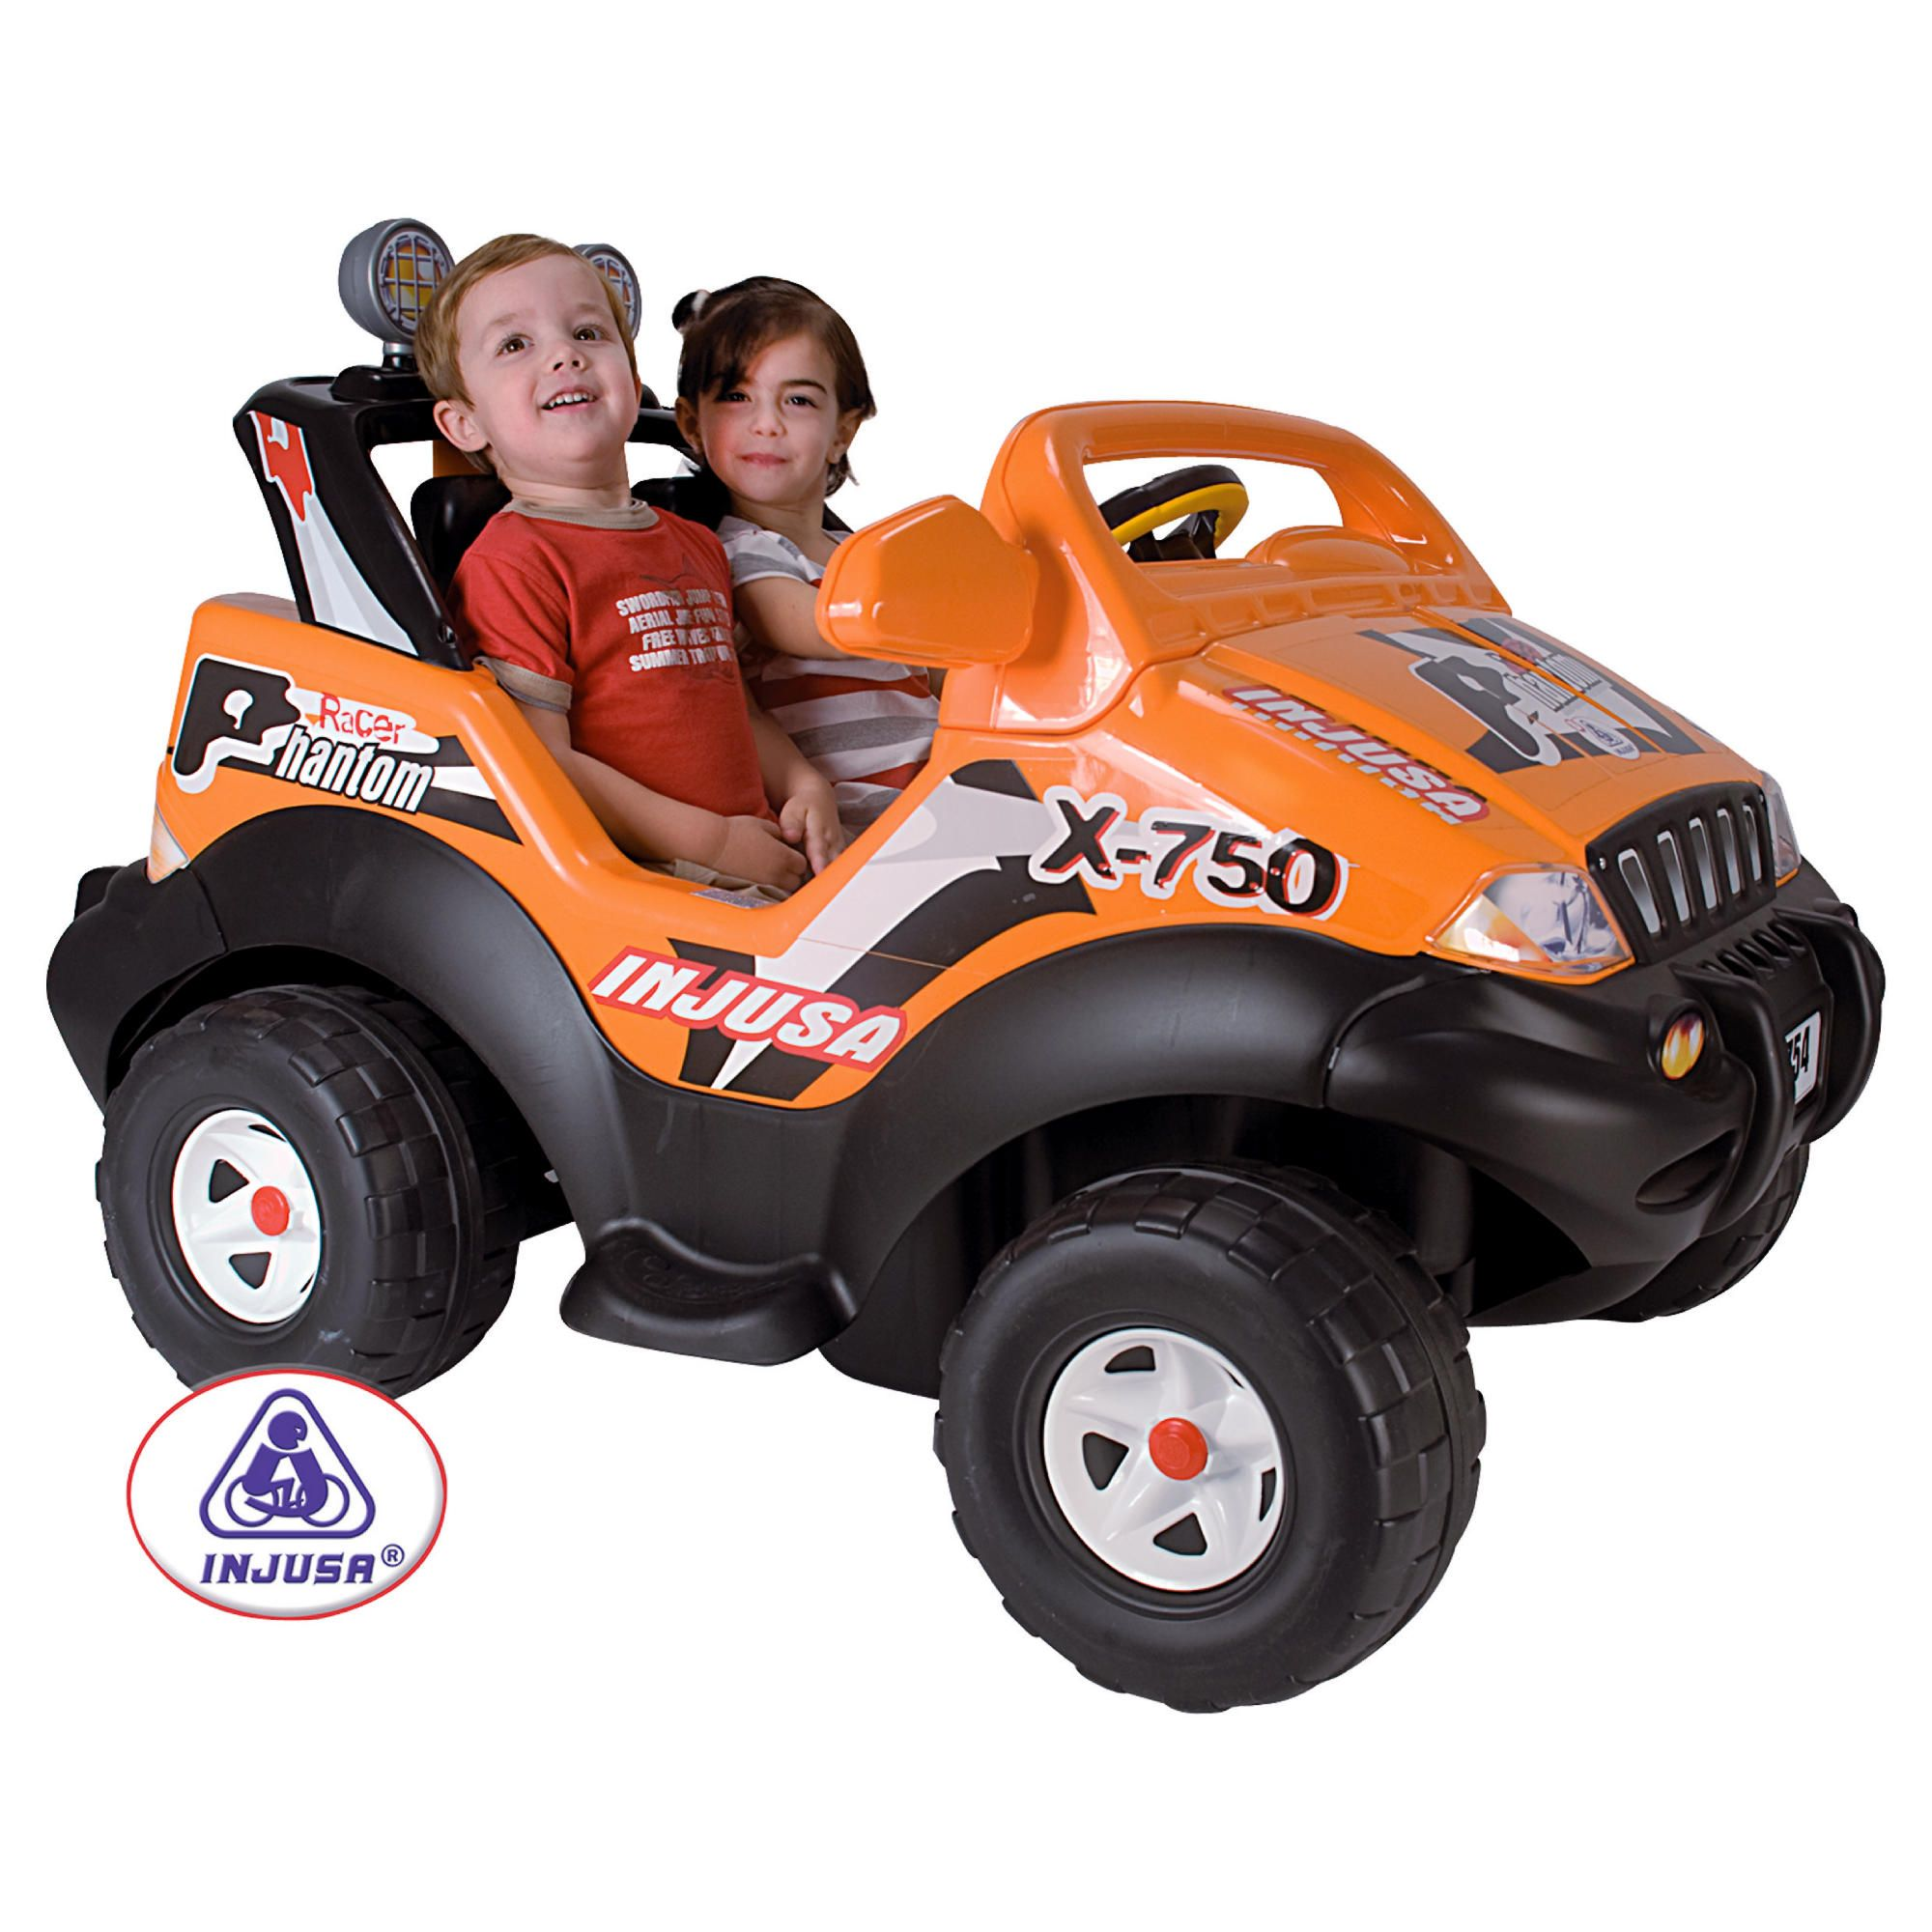 Injusa Phantom Racer 12V 2-Seater Ride-On Jeep at Tesco Direct